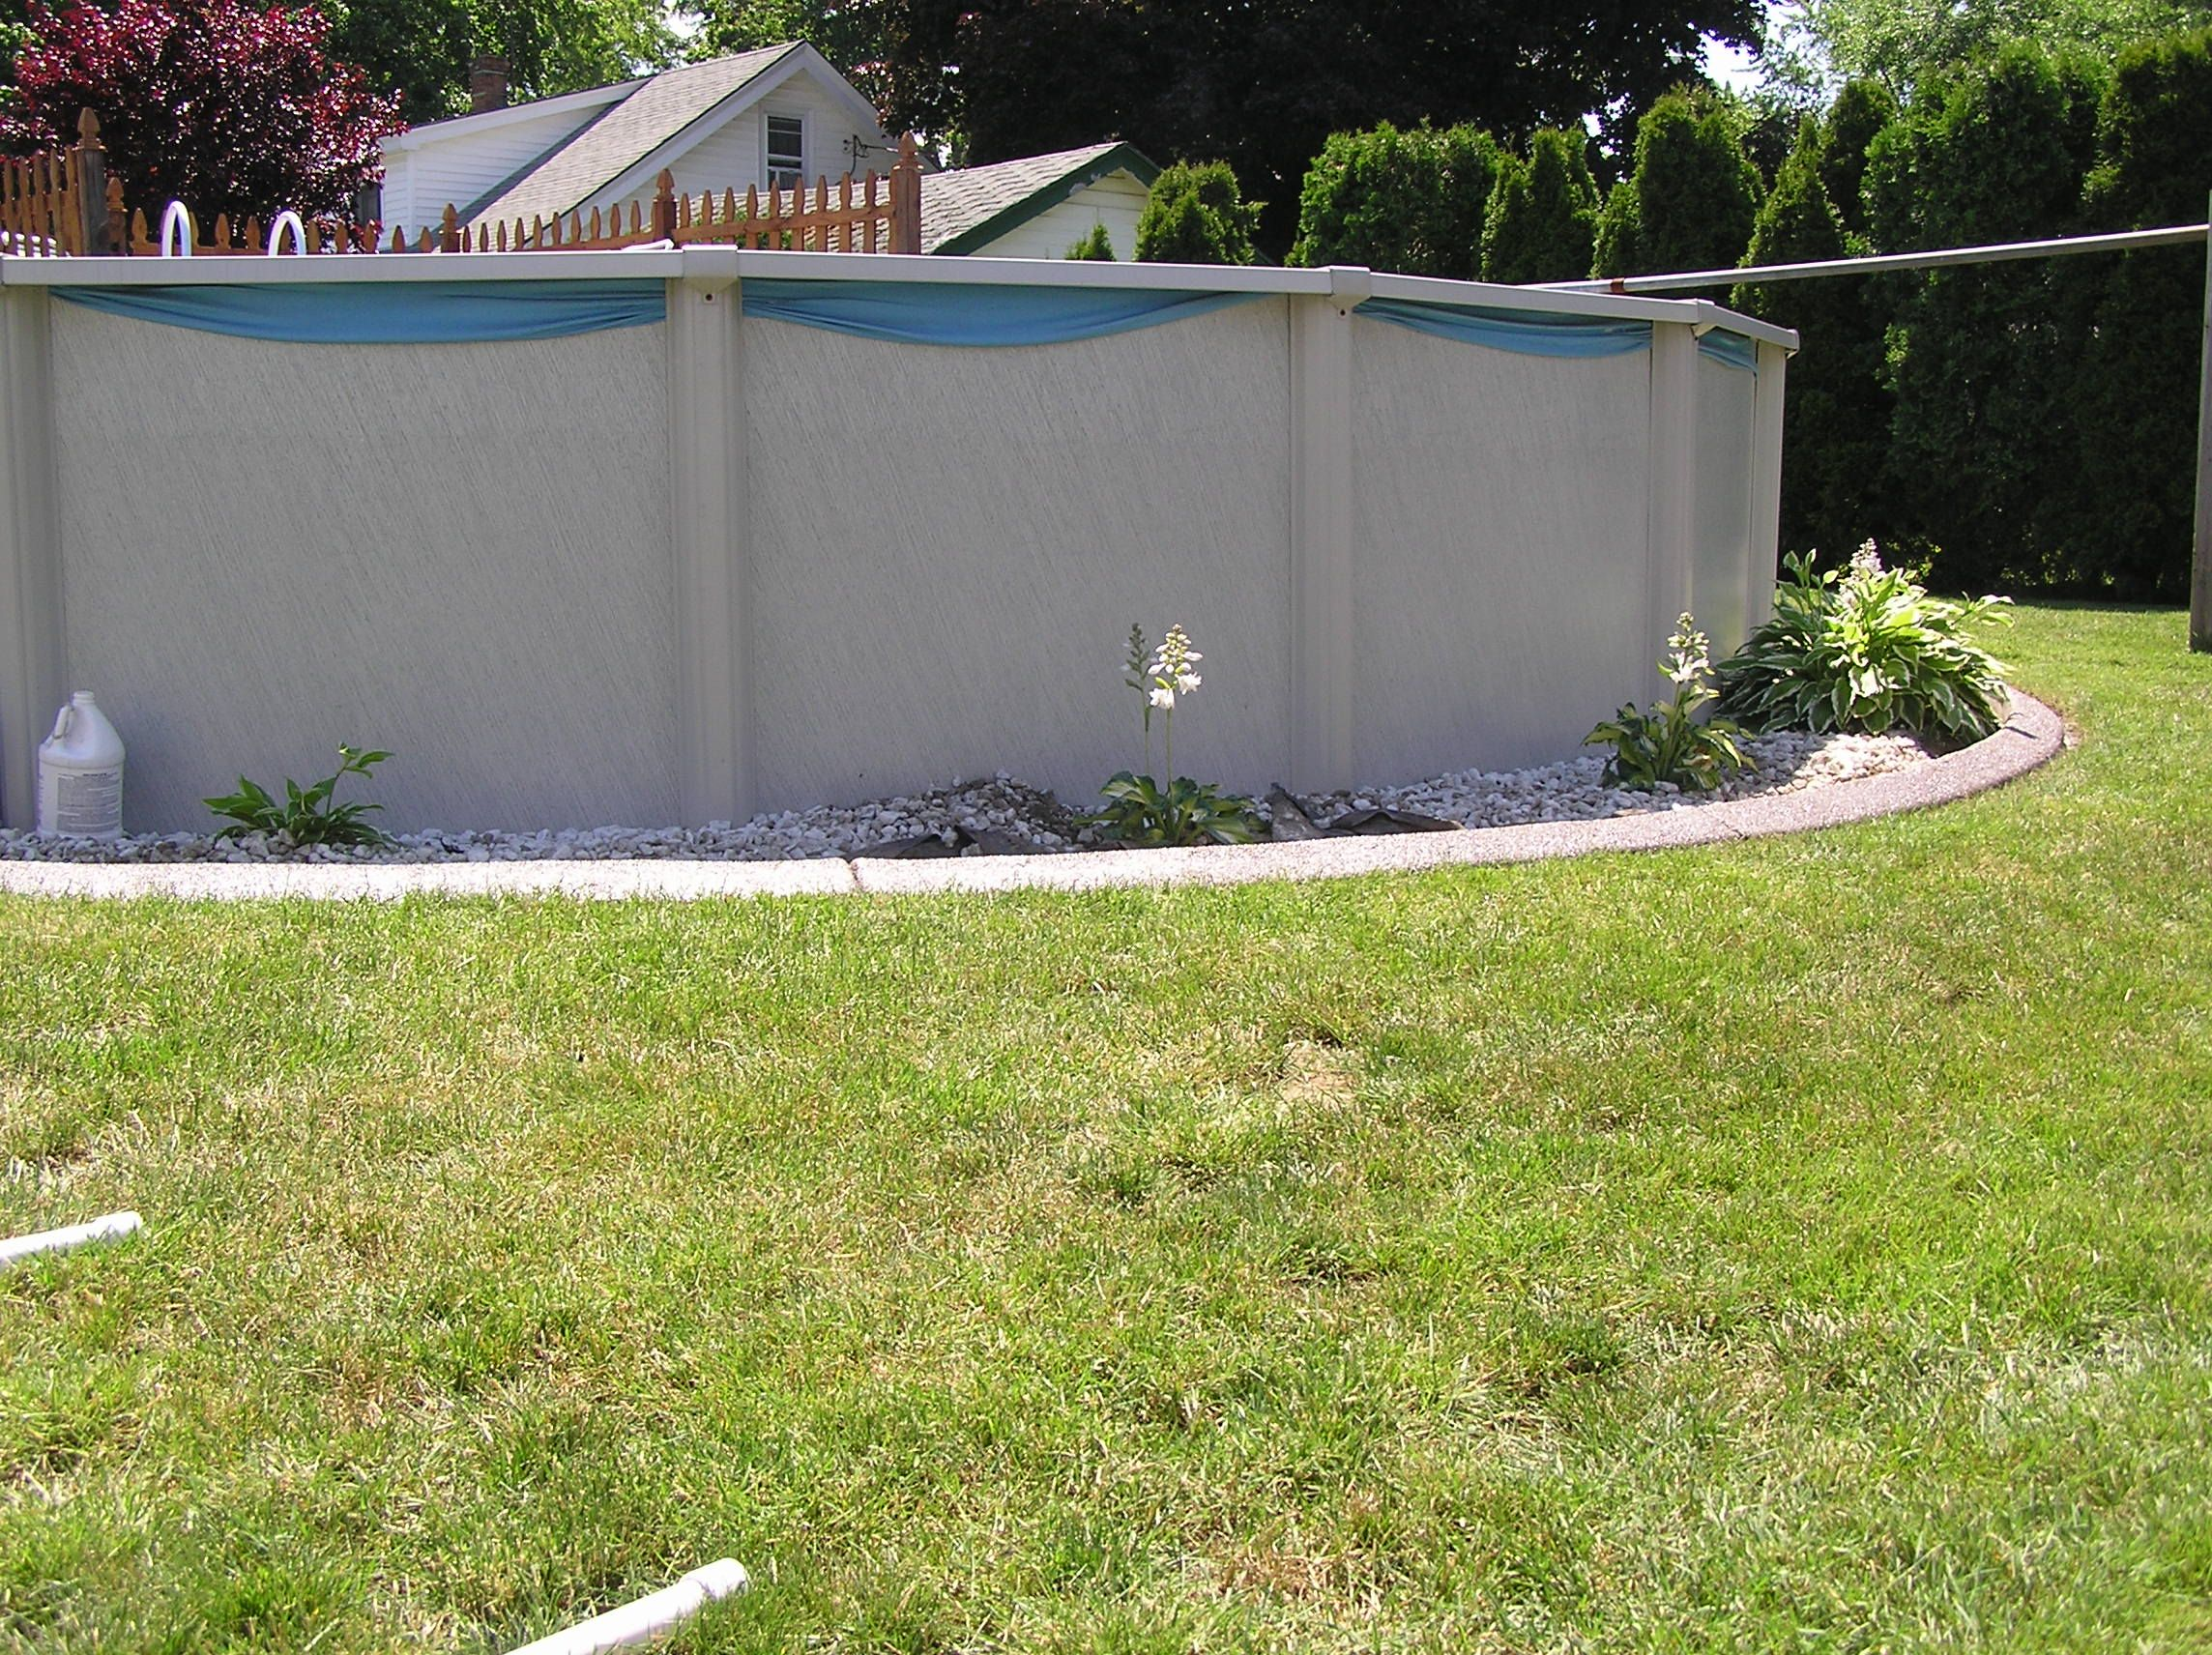 Landscape around above ground pool | Love my curbing! It has ...